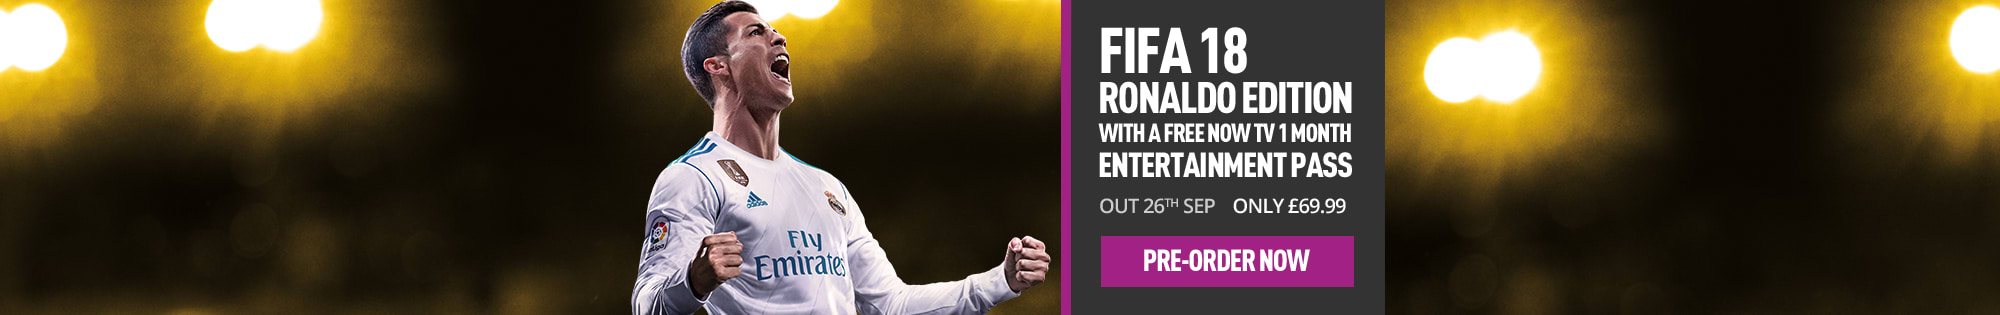 Pre-order Fifa 18 at GAME.co.uk - Homepage banner